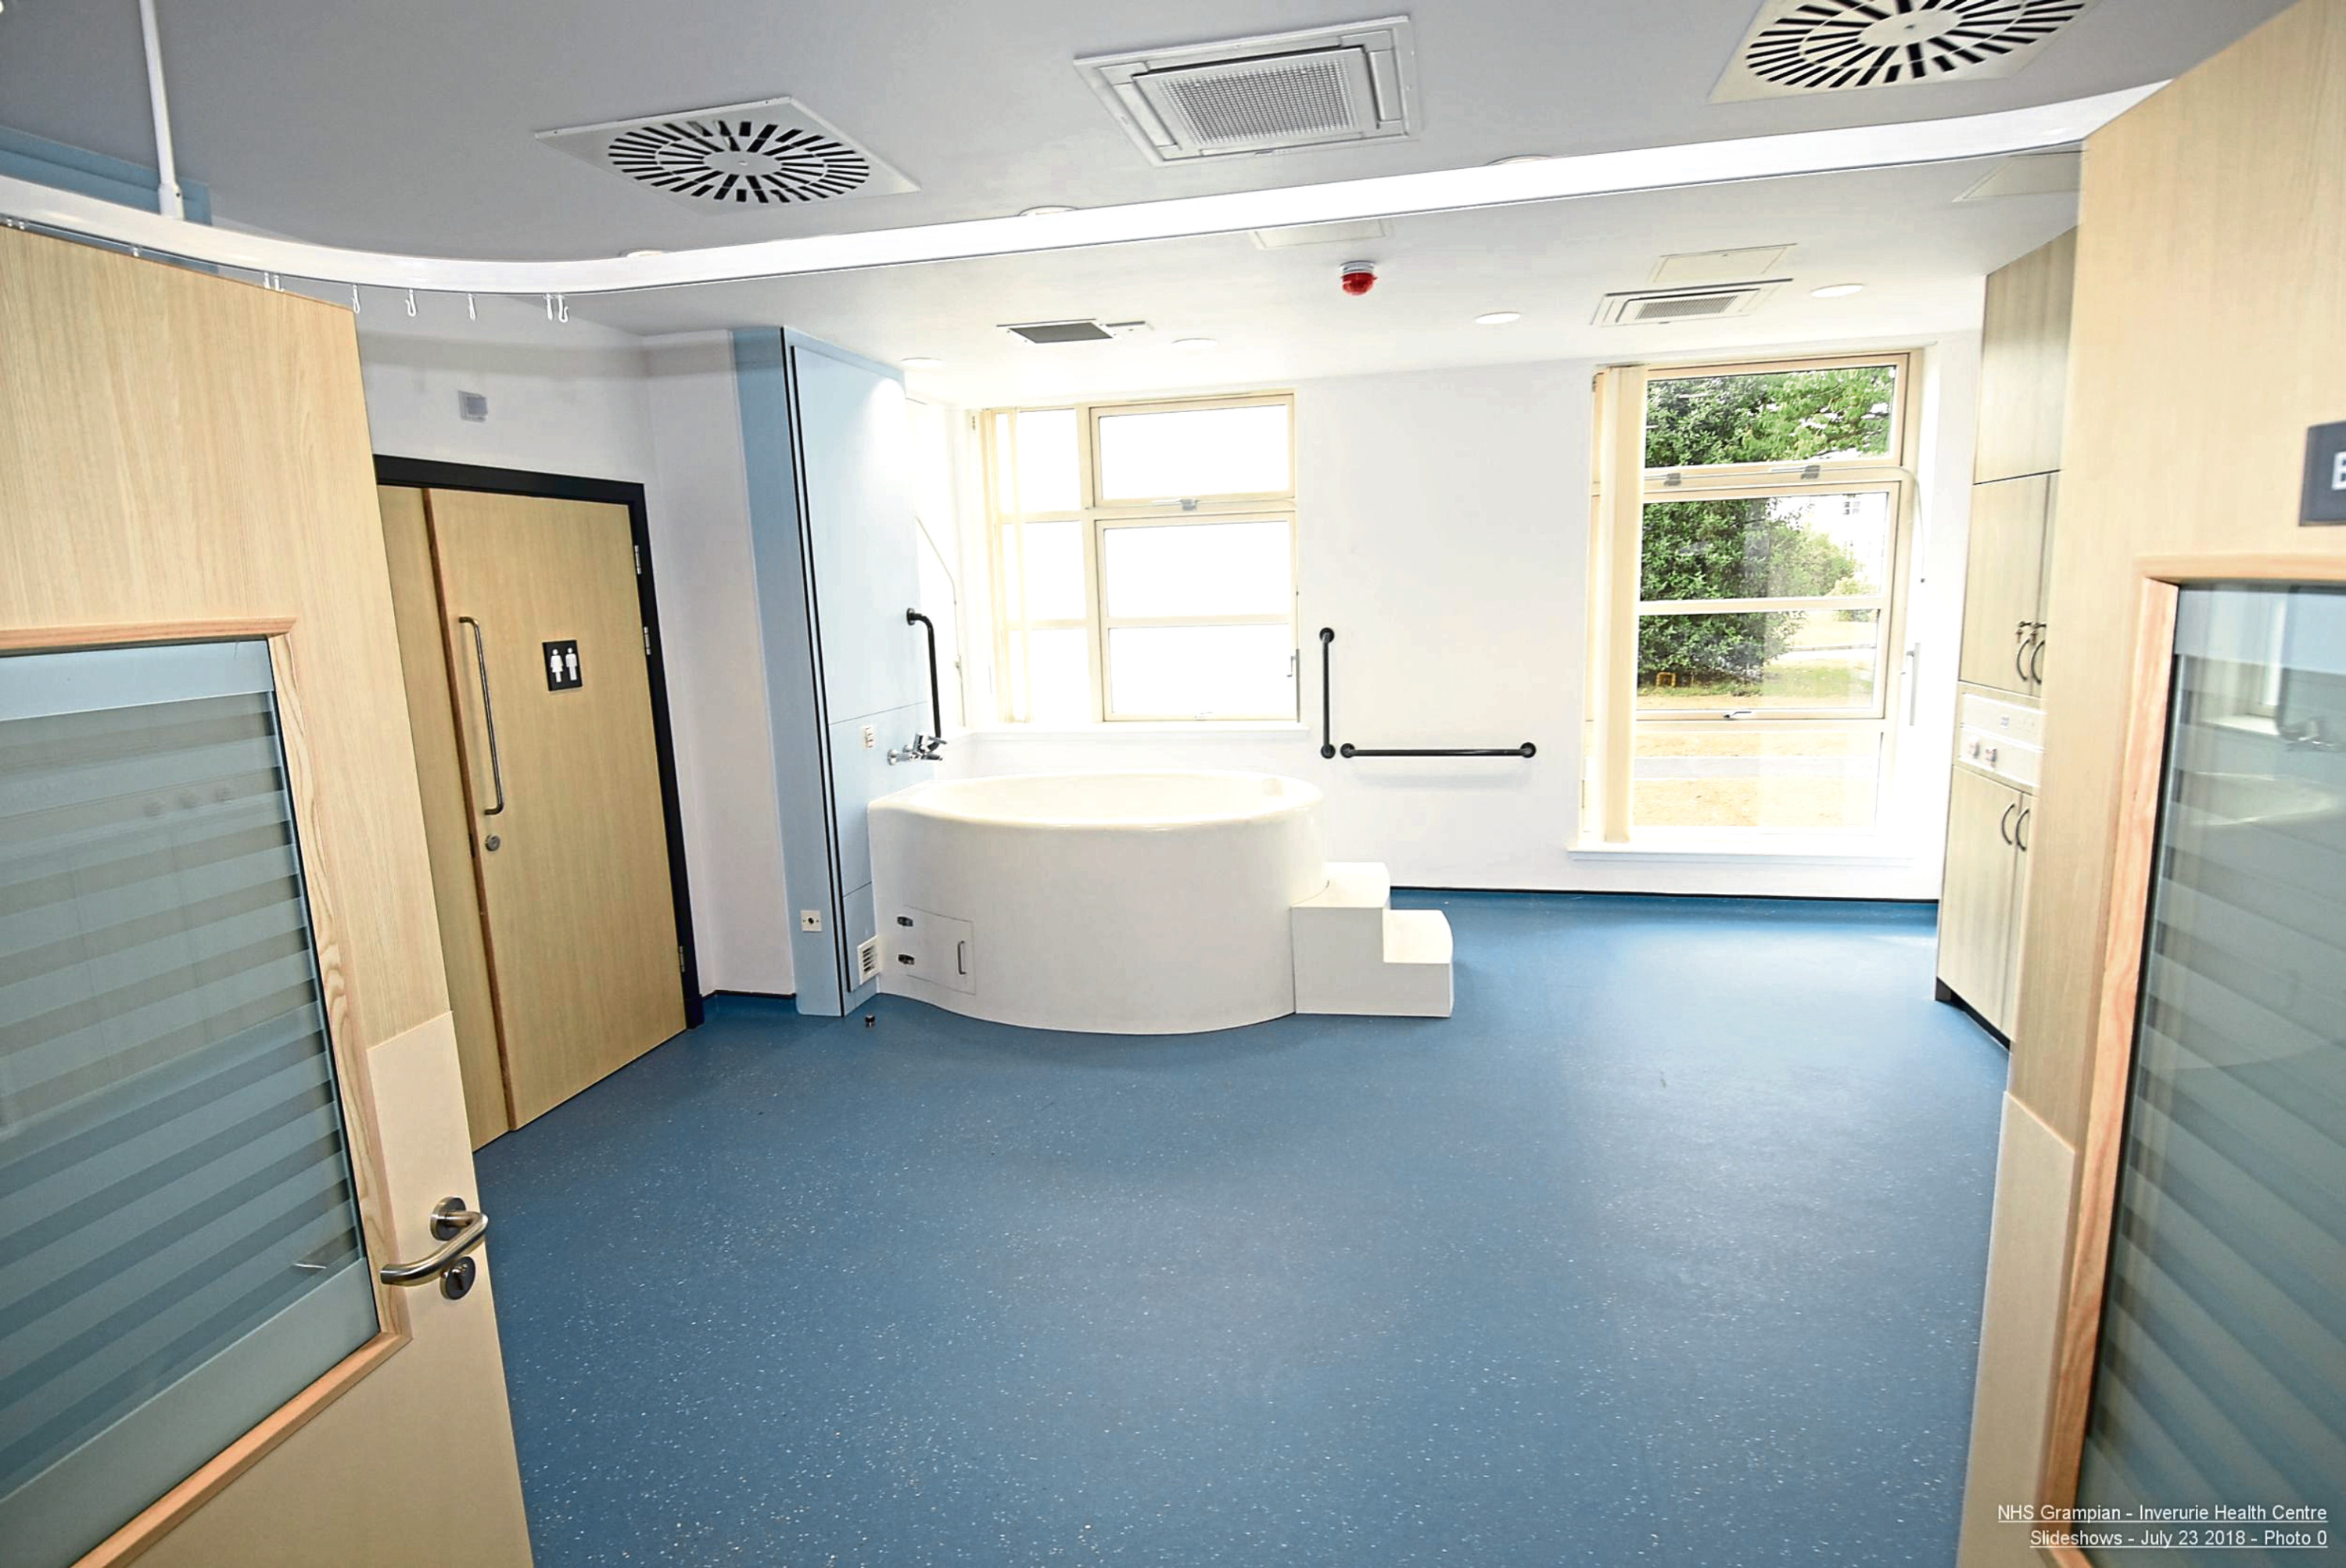 Inside the new unit at Inverurie